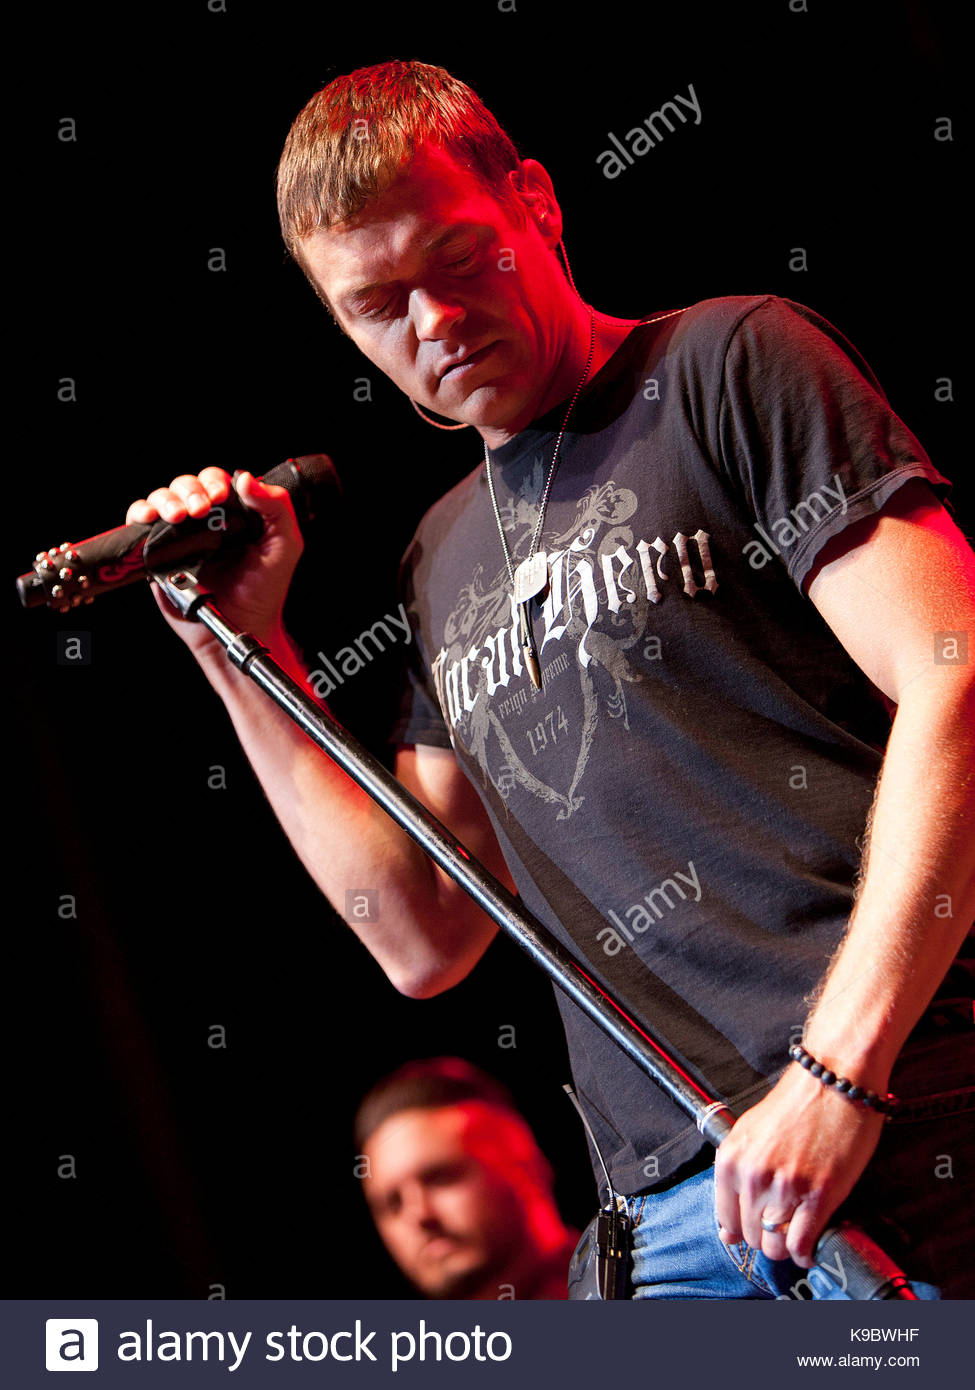 Hit rockers 3 Doors Down performed at The Tabernacle on Wednesday September 10 2014 in Atlanta GA. The performance was live-streamed on Yahoo! Music  sc 1 st  Alamy & Brad Arnold. Hit rockers 3 Doors Down performed at The Tabernacle ...